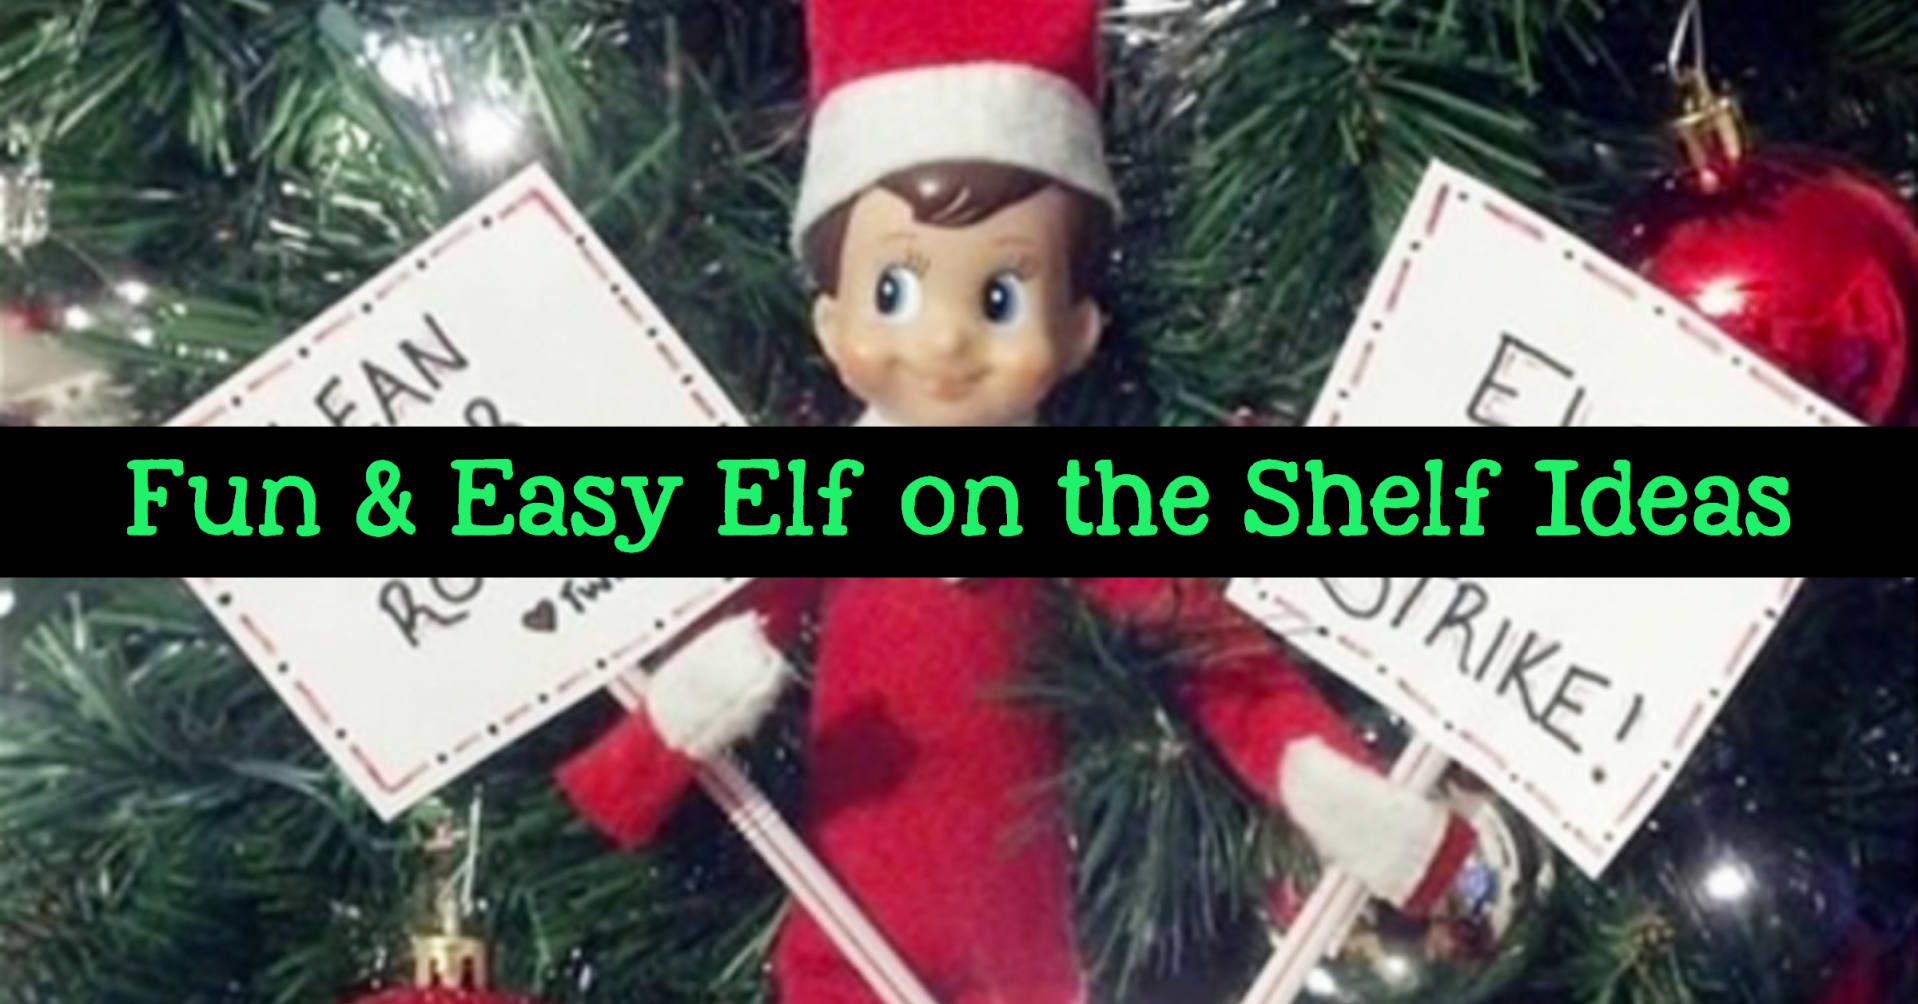 Elf on the Shelf Ideas - Funny, hilarious, easy and last minute elf on the shelf ideas for kids